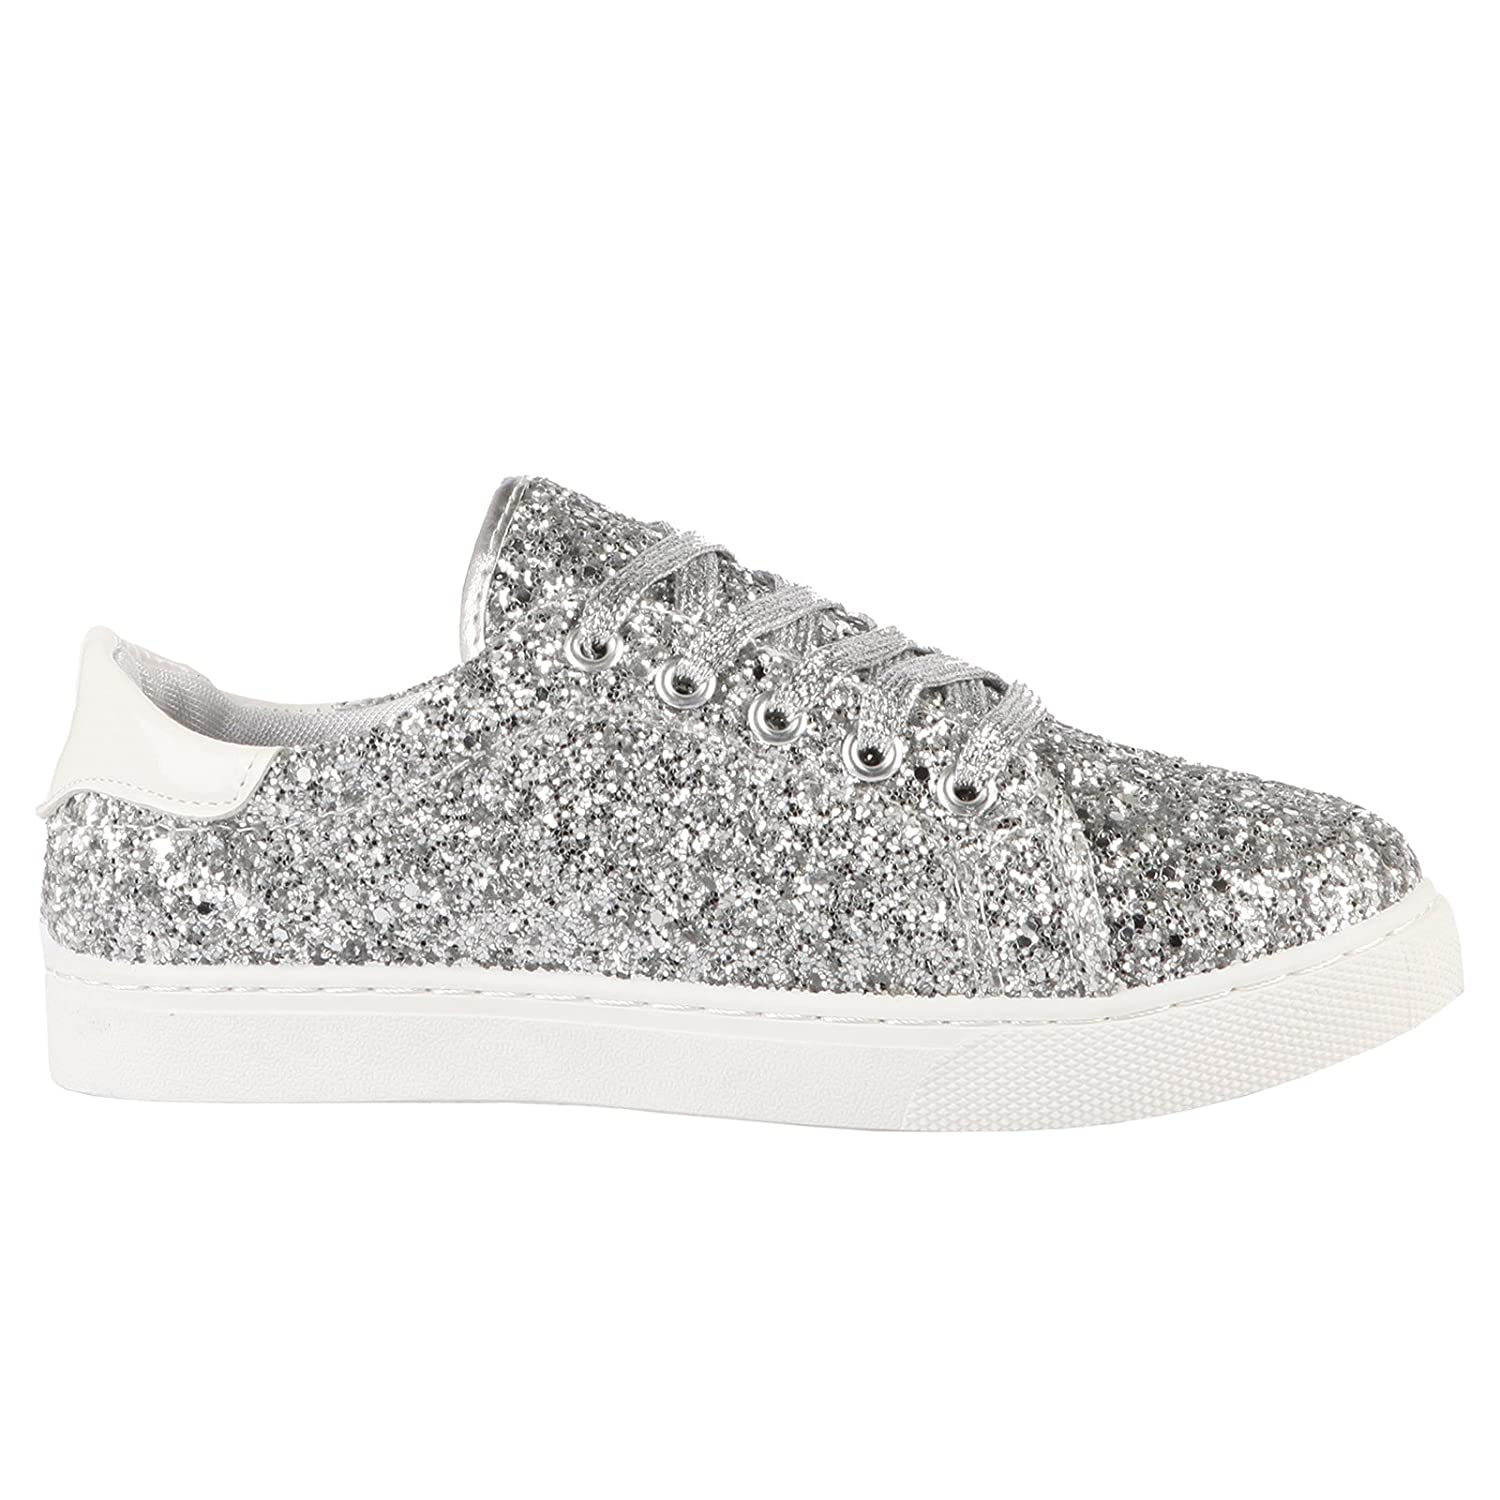 1df81d23816e ByPublicDemand Ally Womens Lace Up Thick Sole Glitter Trainers Silver  Glitter Size 6 UK / 39 EU: Amazon.co.uk: Shoes & Bags